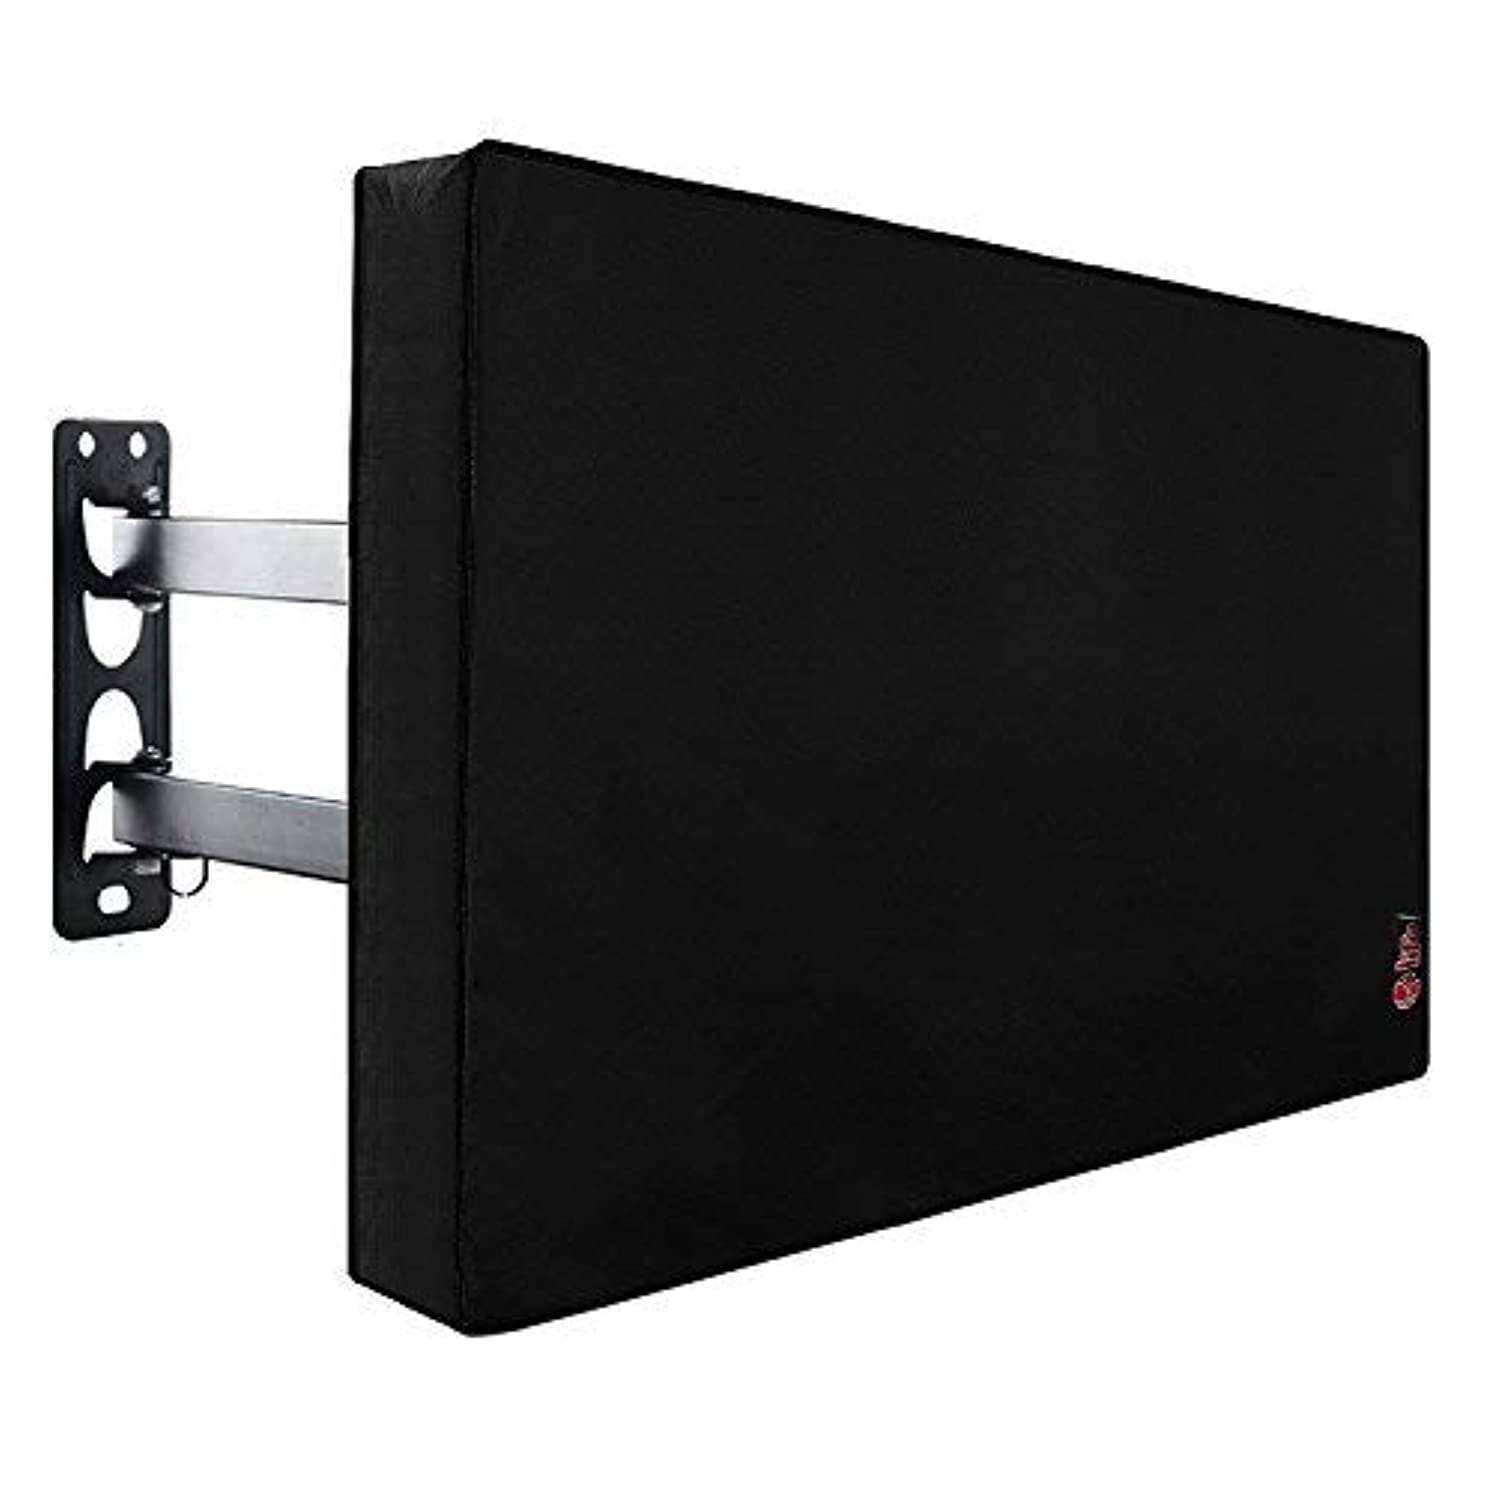 Outdoor TV Cover 60'' - 65'', Waterproof and Weatherproof, Fits Up to 58